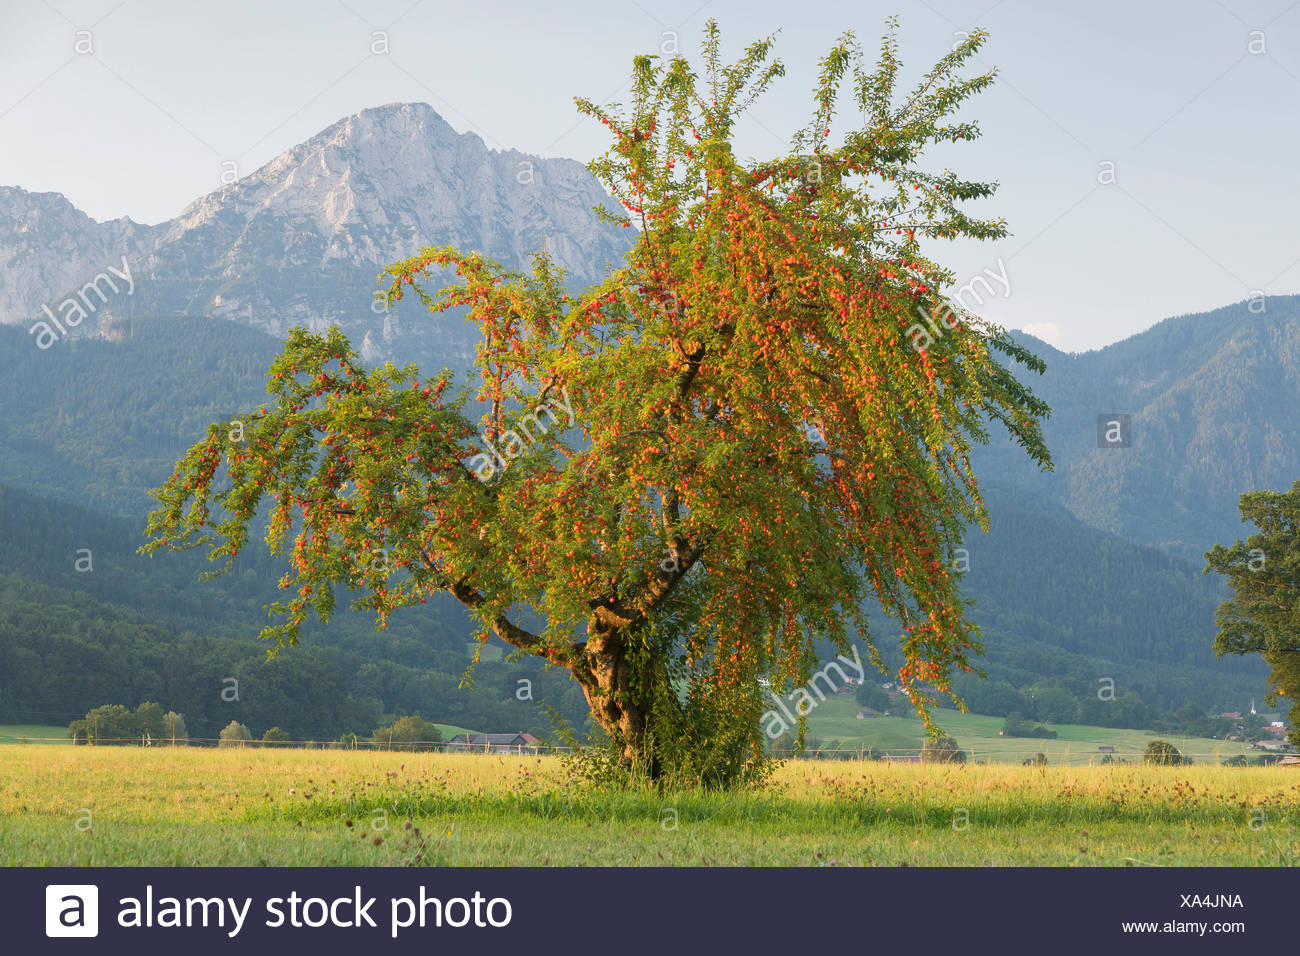 Fruit-tree  in Anger with Hochstaufen in the background - Stock Image